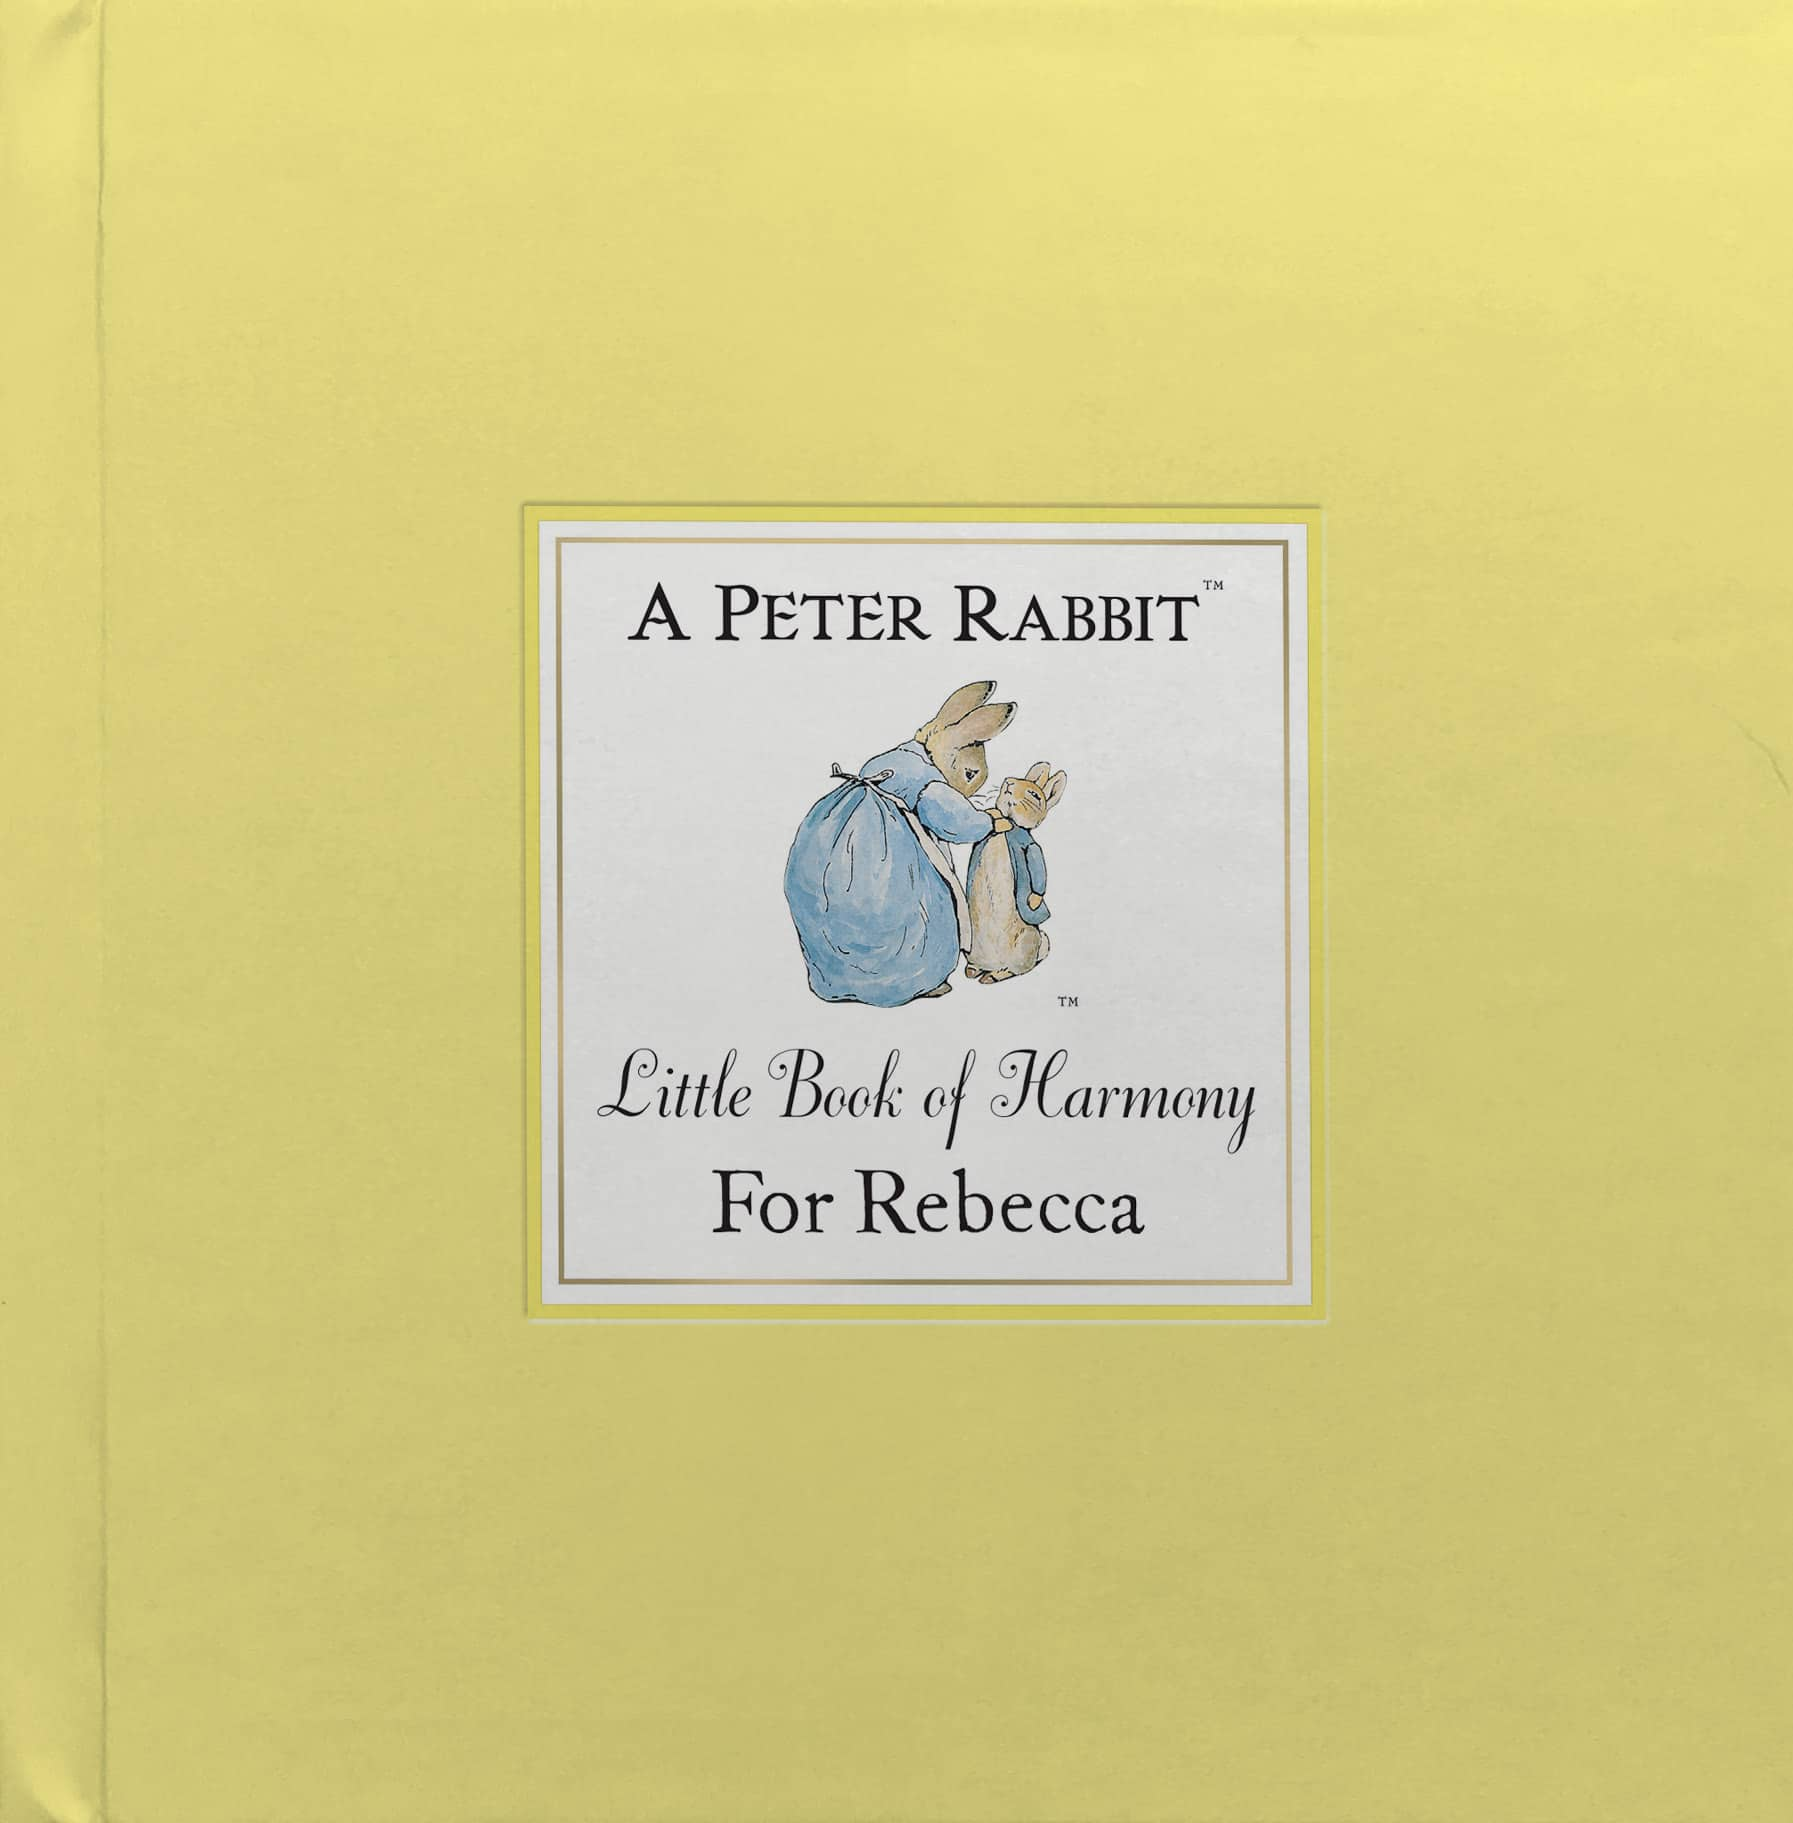 personalised peter rabbit book of harmony